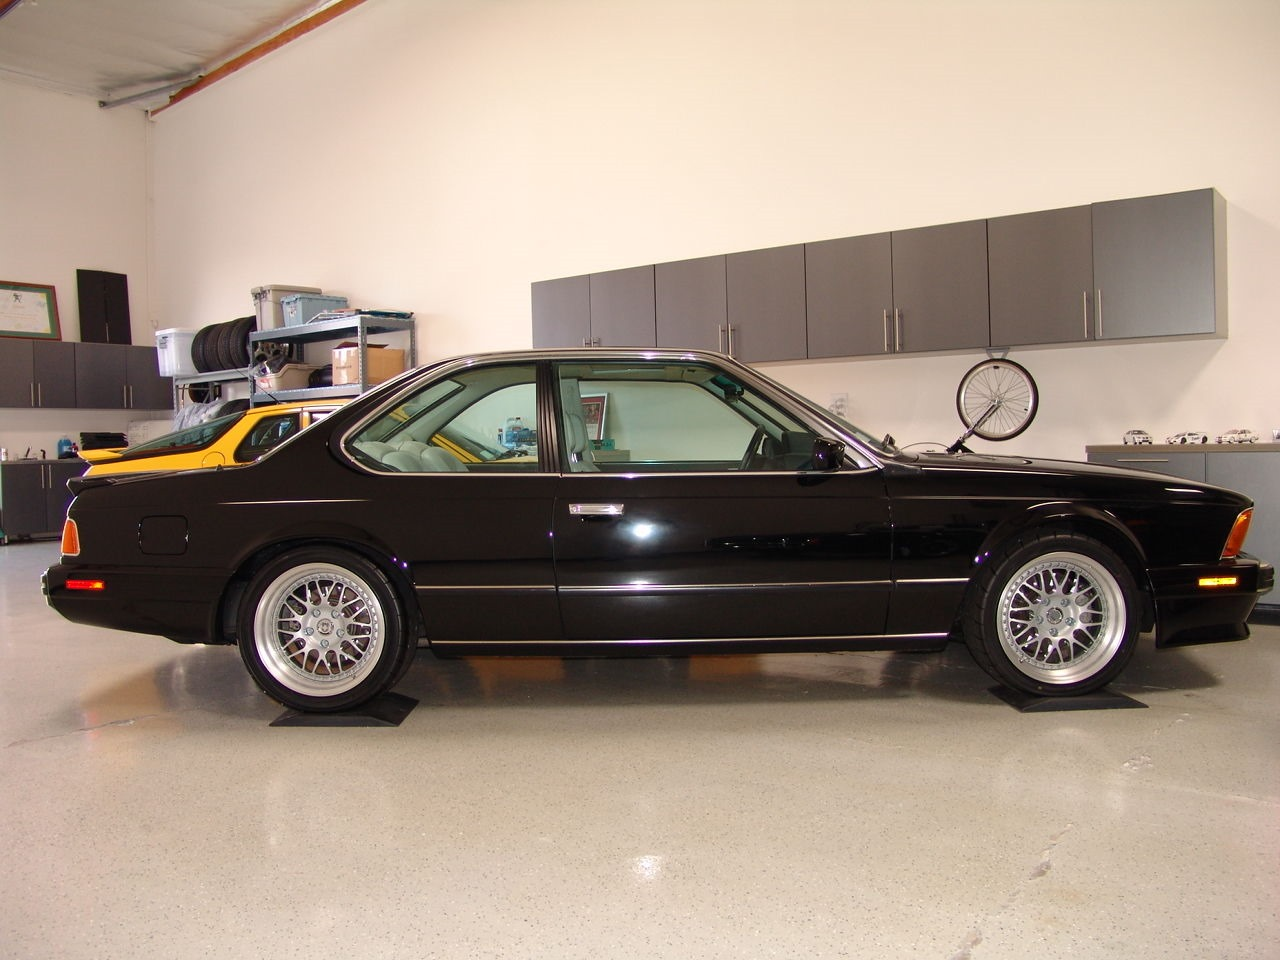 1988 bmw e24 m6 for sale priced at usd158 800 autoevolution rh autoevolution com BMW Wiring Harness Diagram bmw e24 m6 wiring diagram